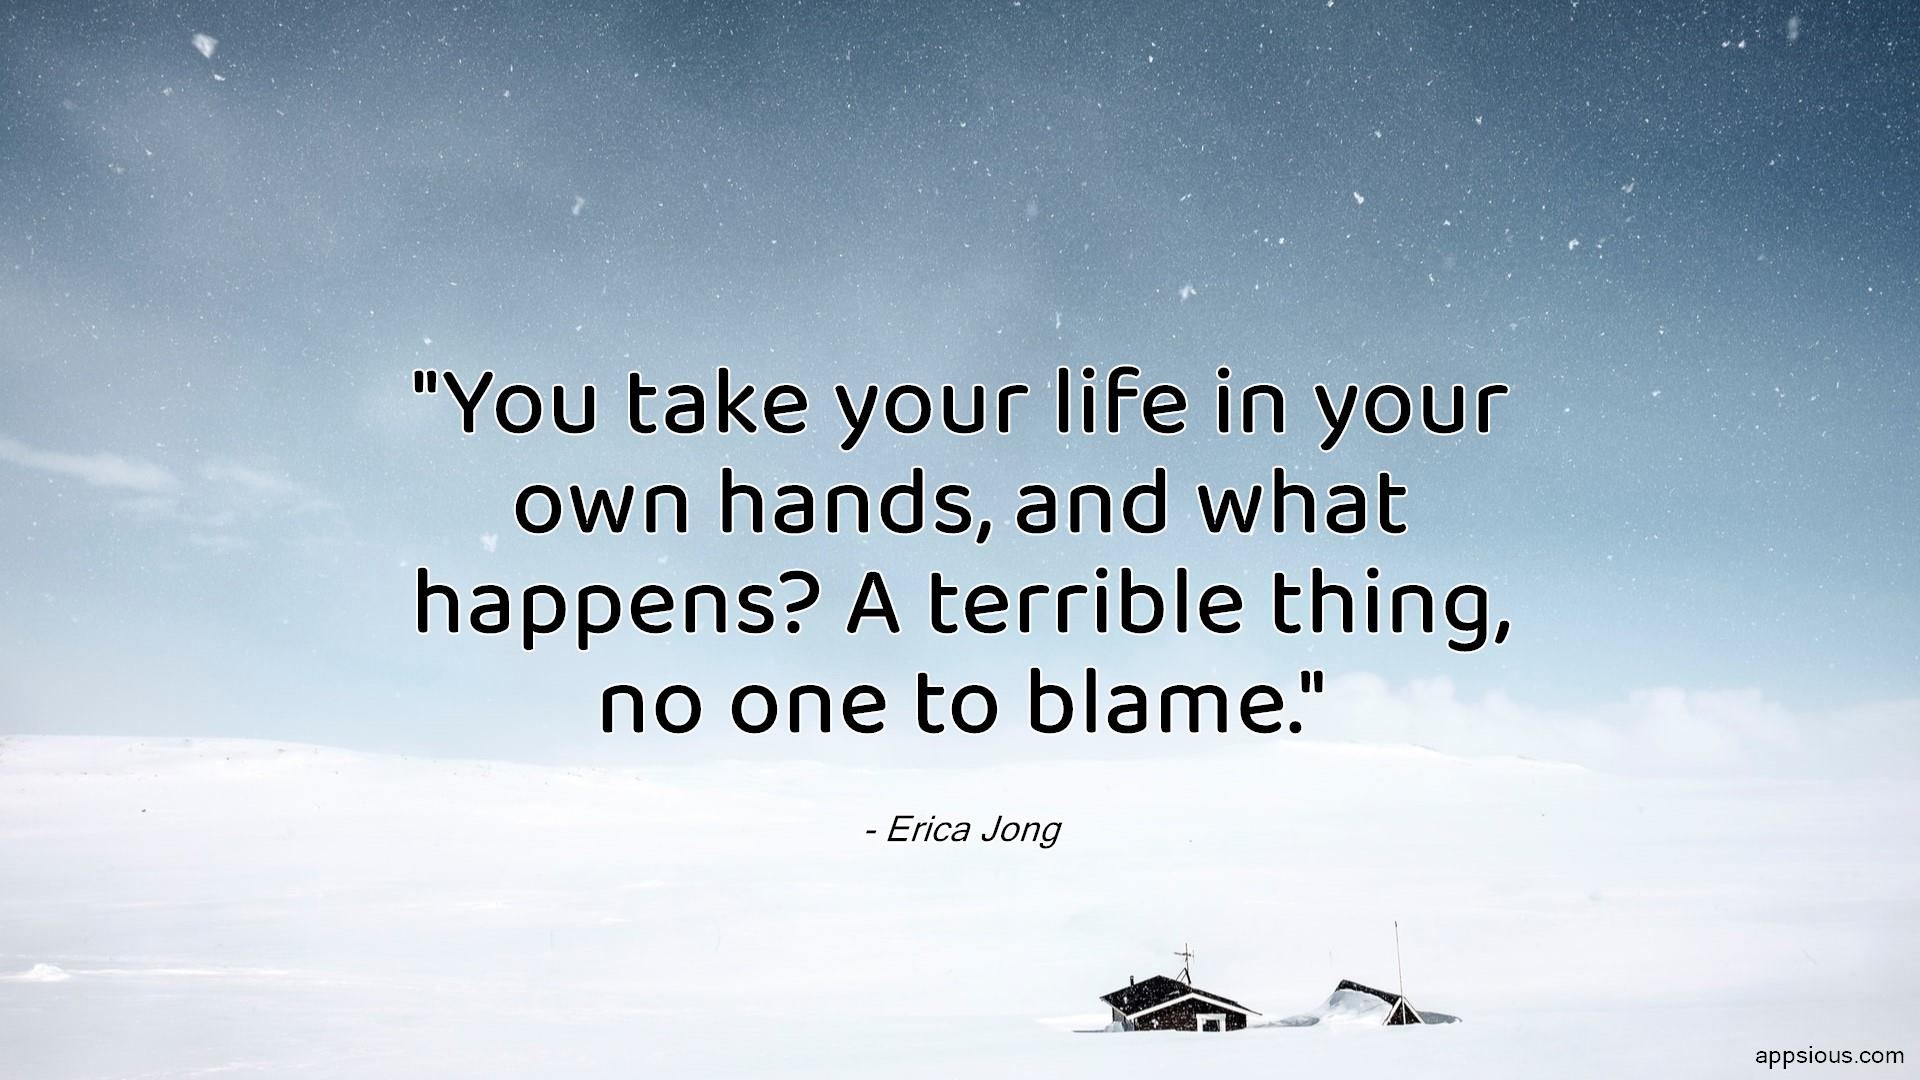 You take your life in your own hands, and what happens? A terrible thing, no one to blame.